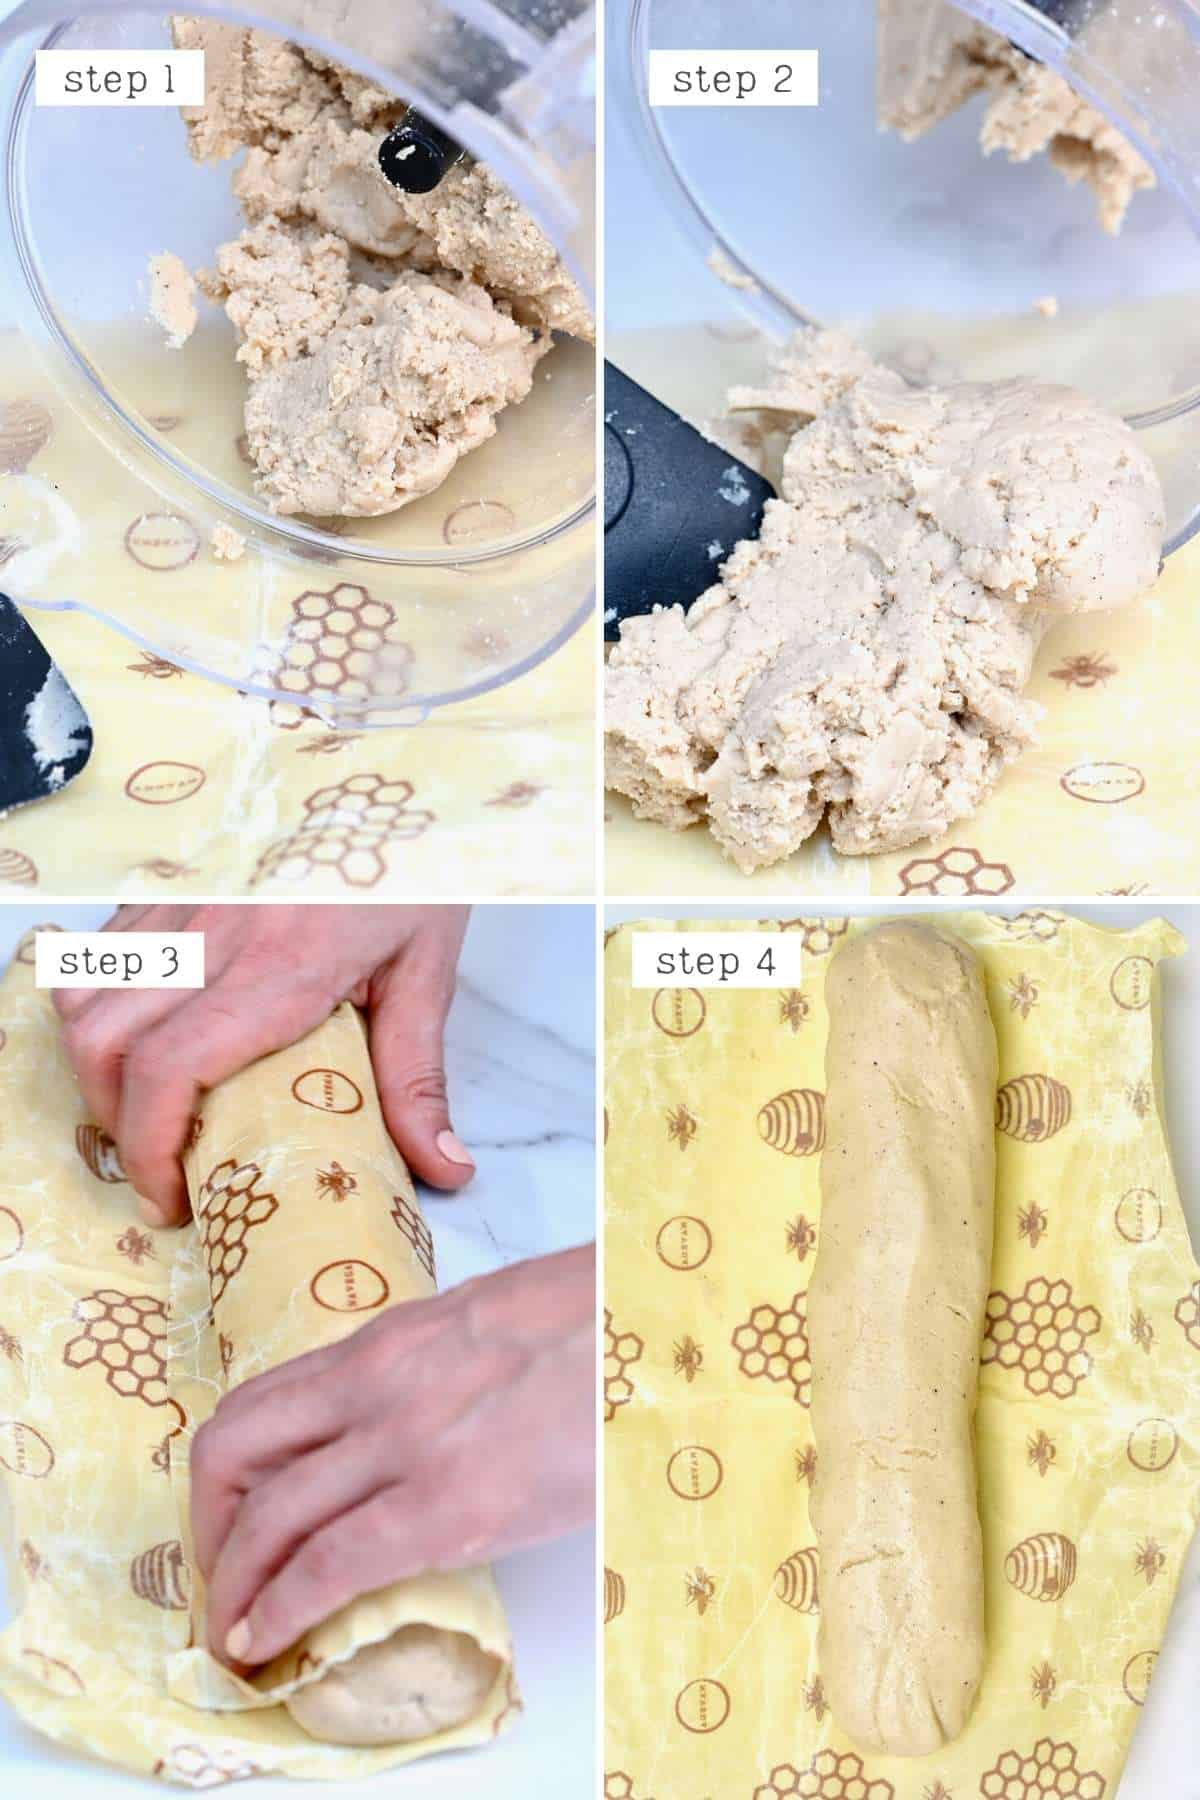 Steps for rolling almond paste